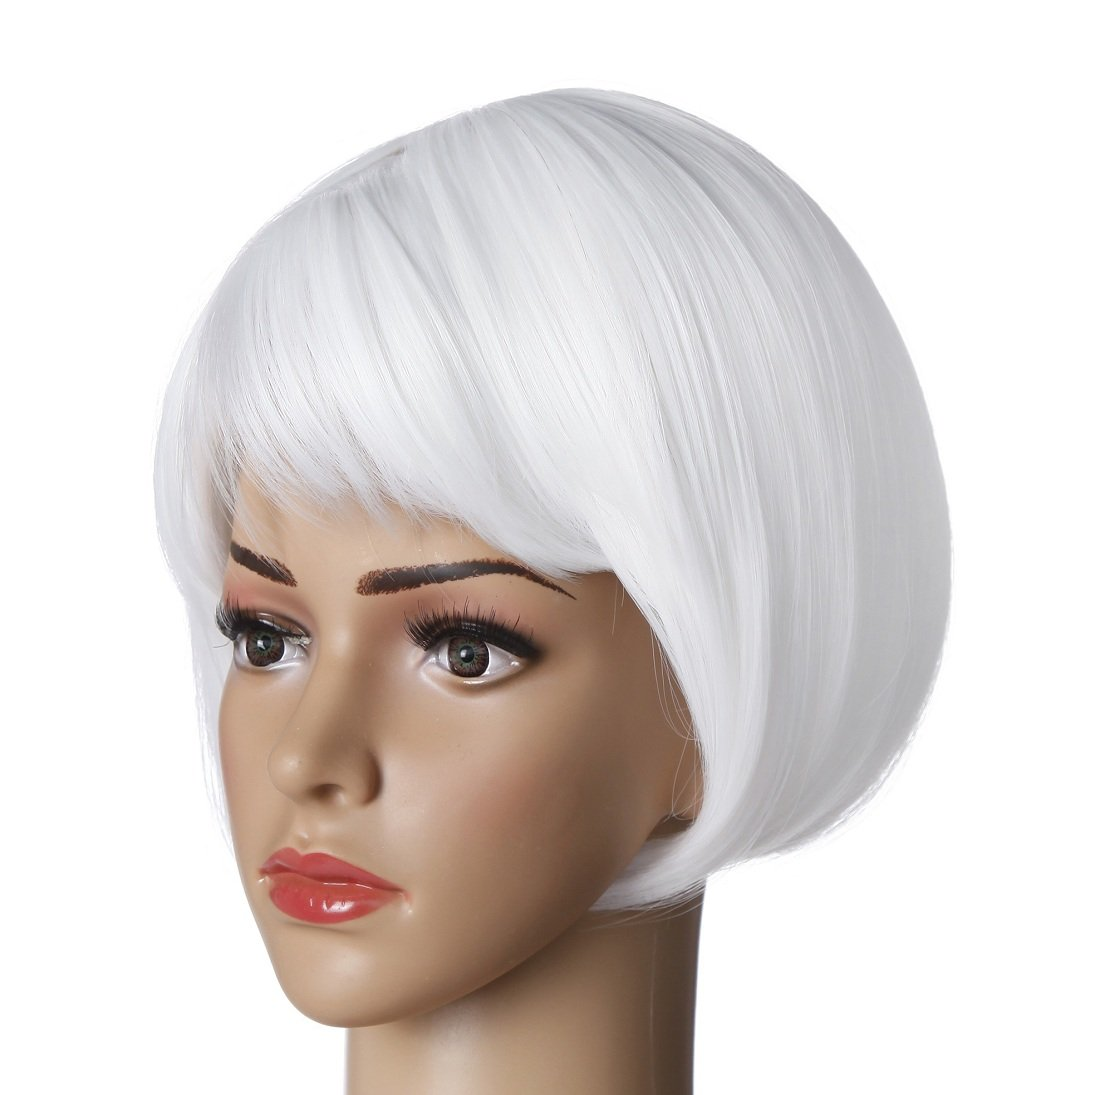 Short Straight Bob Hair Wigs 10'' Bright White Synthetic Party Costume Wig (White) by Liasun (Image #5)